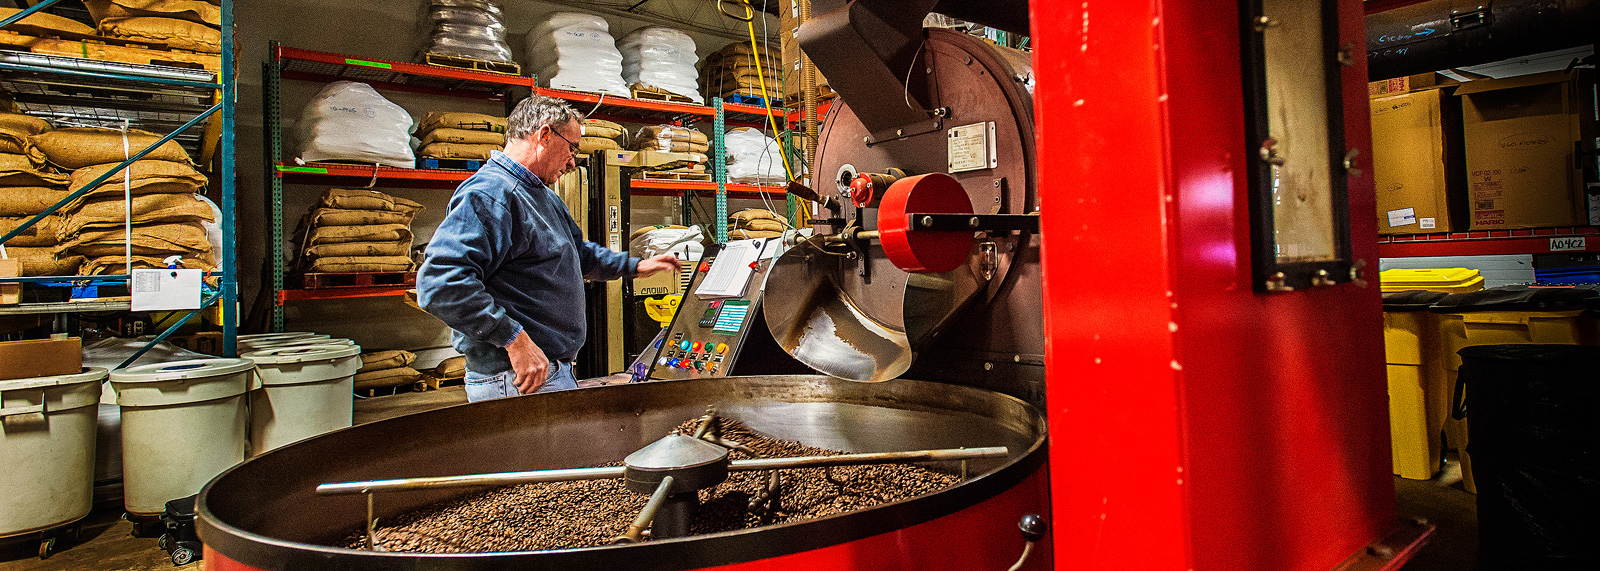 Coffee roasting at Zingerman's Coffee Company